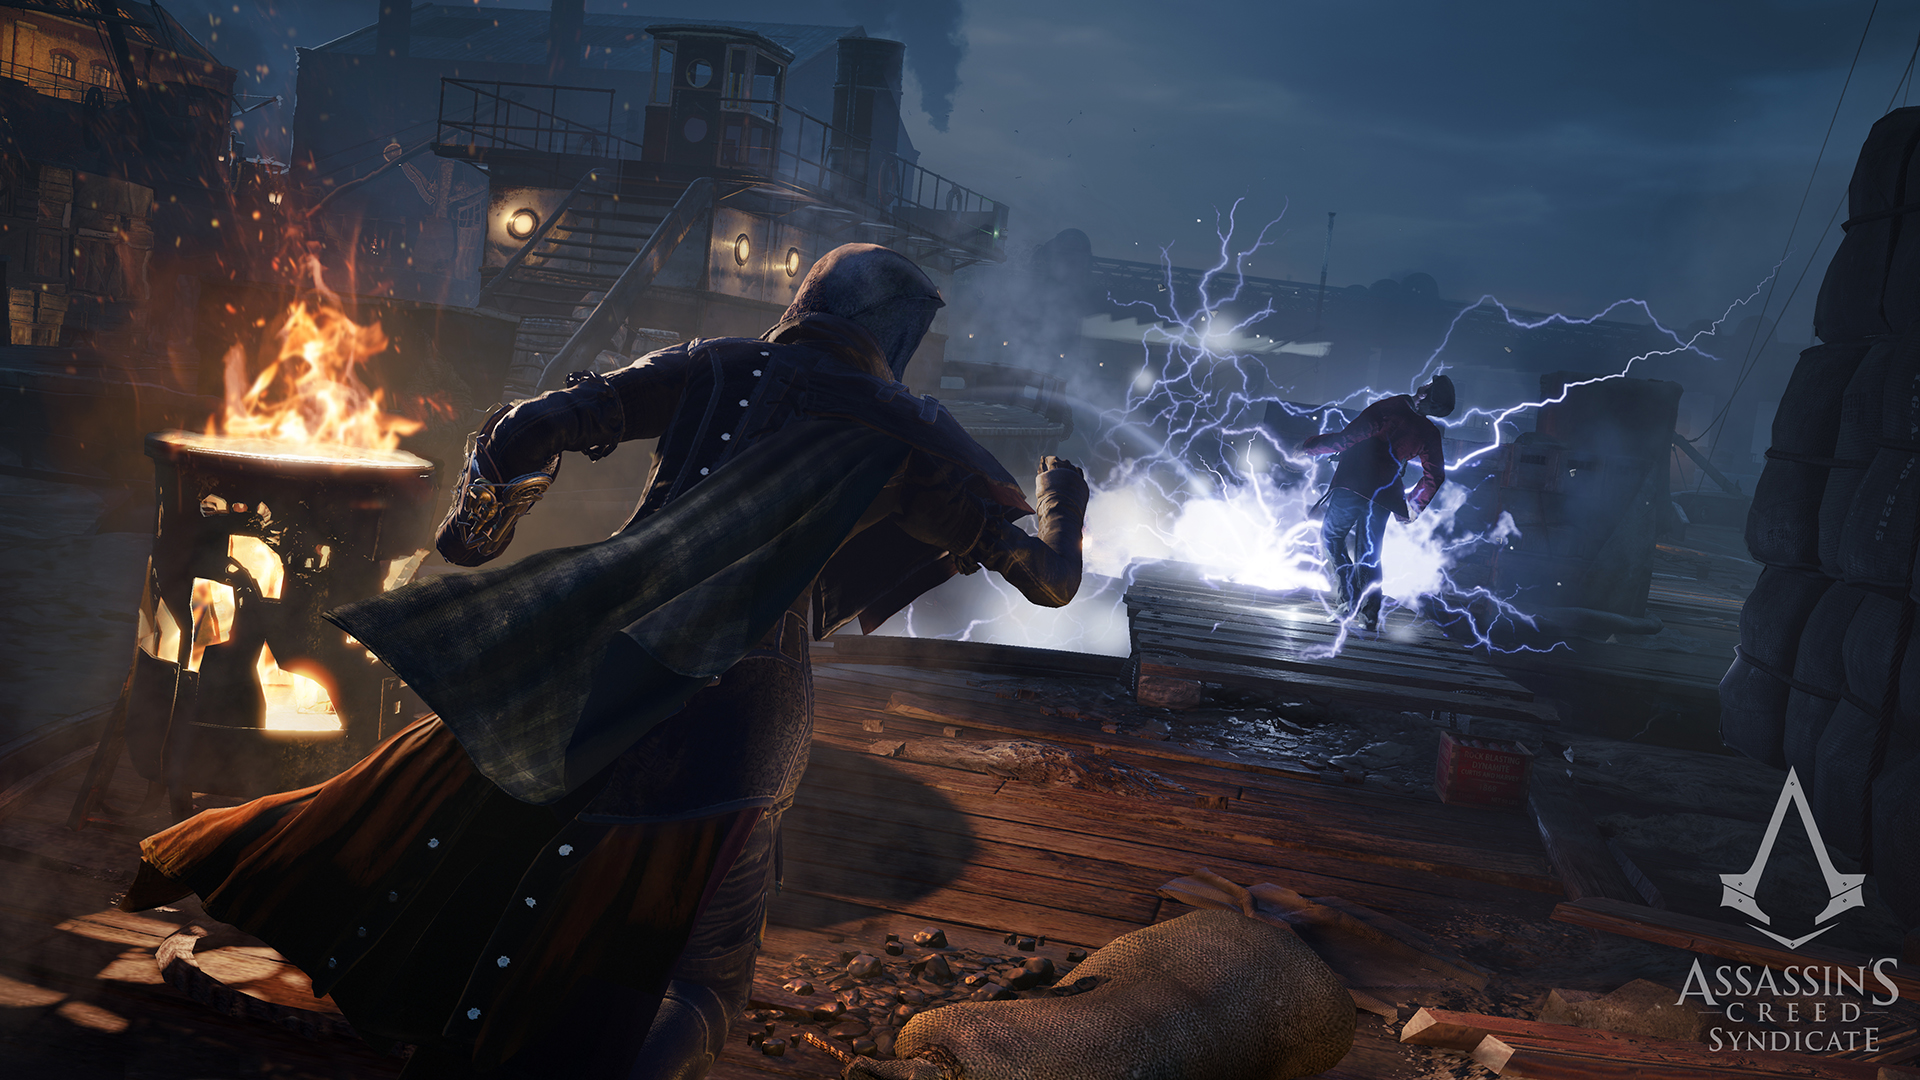 Assassin S Creed Syndicate Sequence 5 Breaking News Vg247